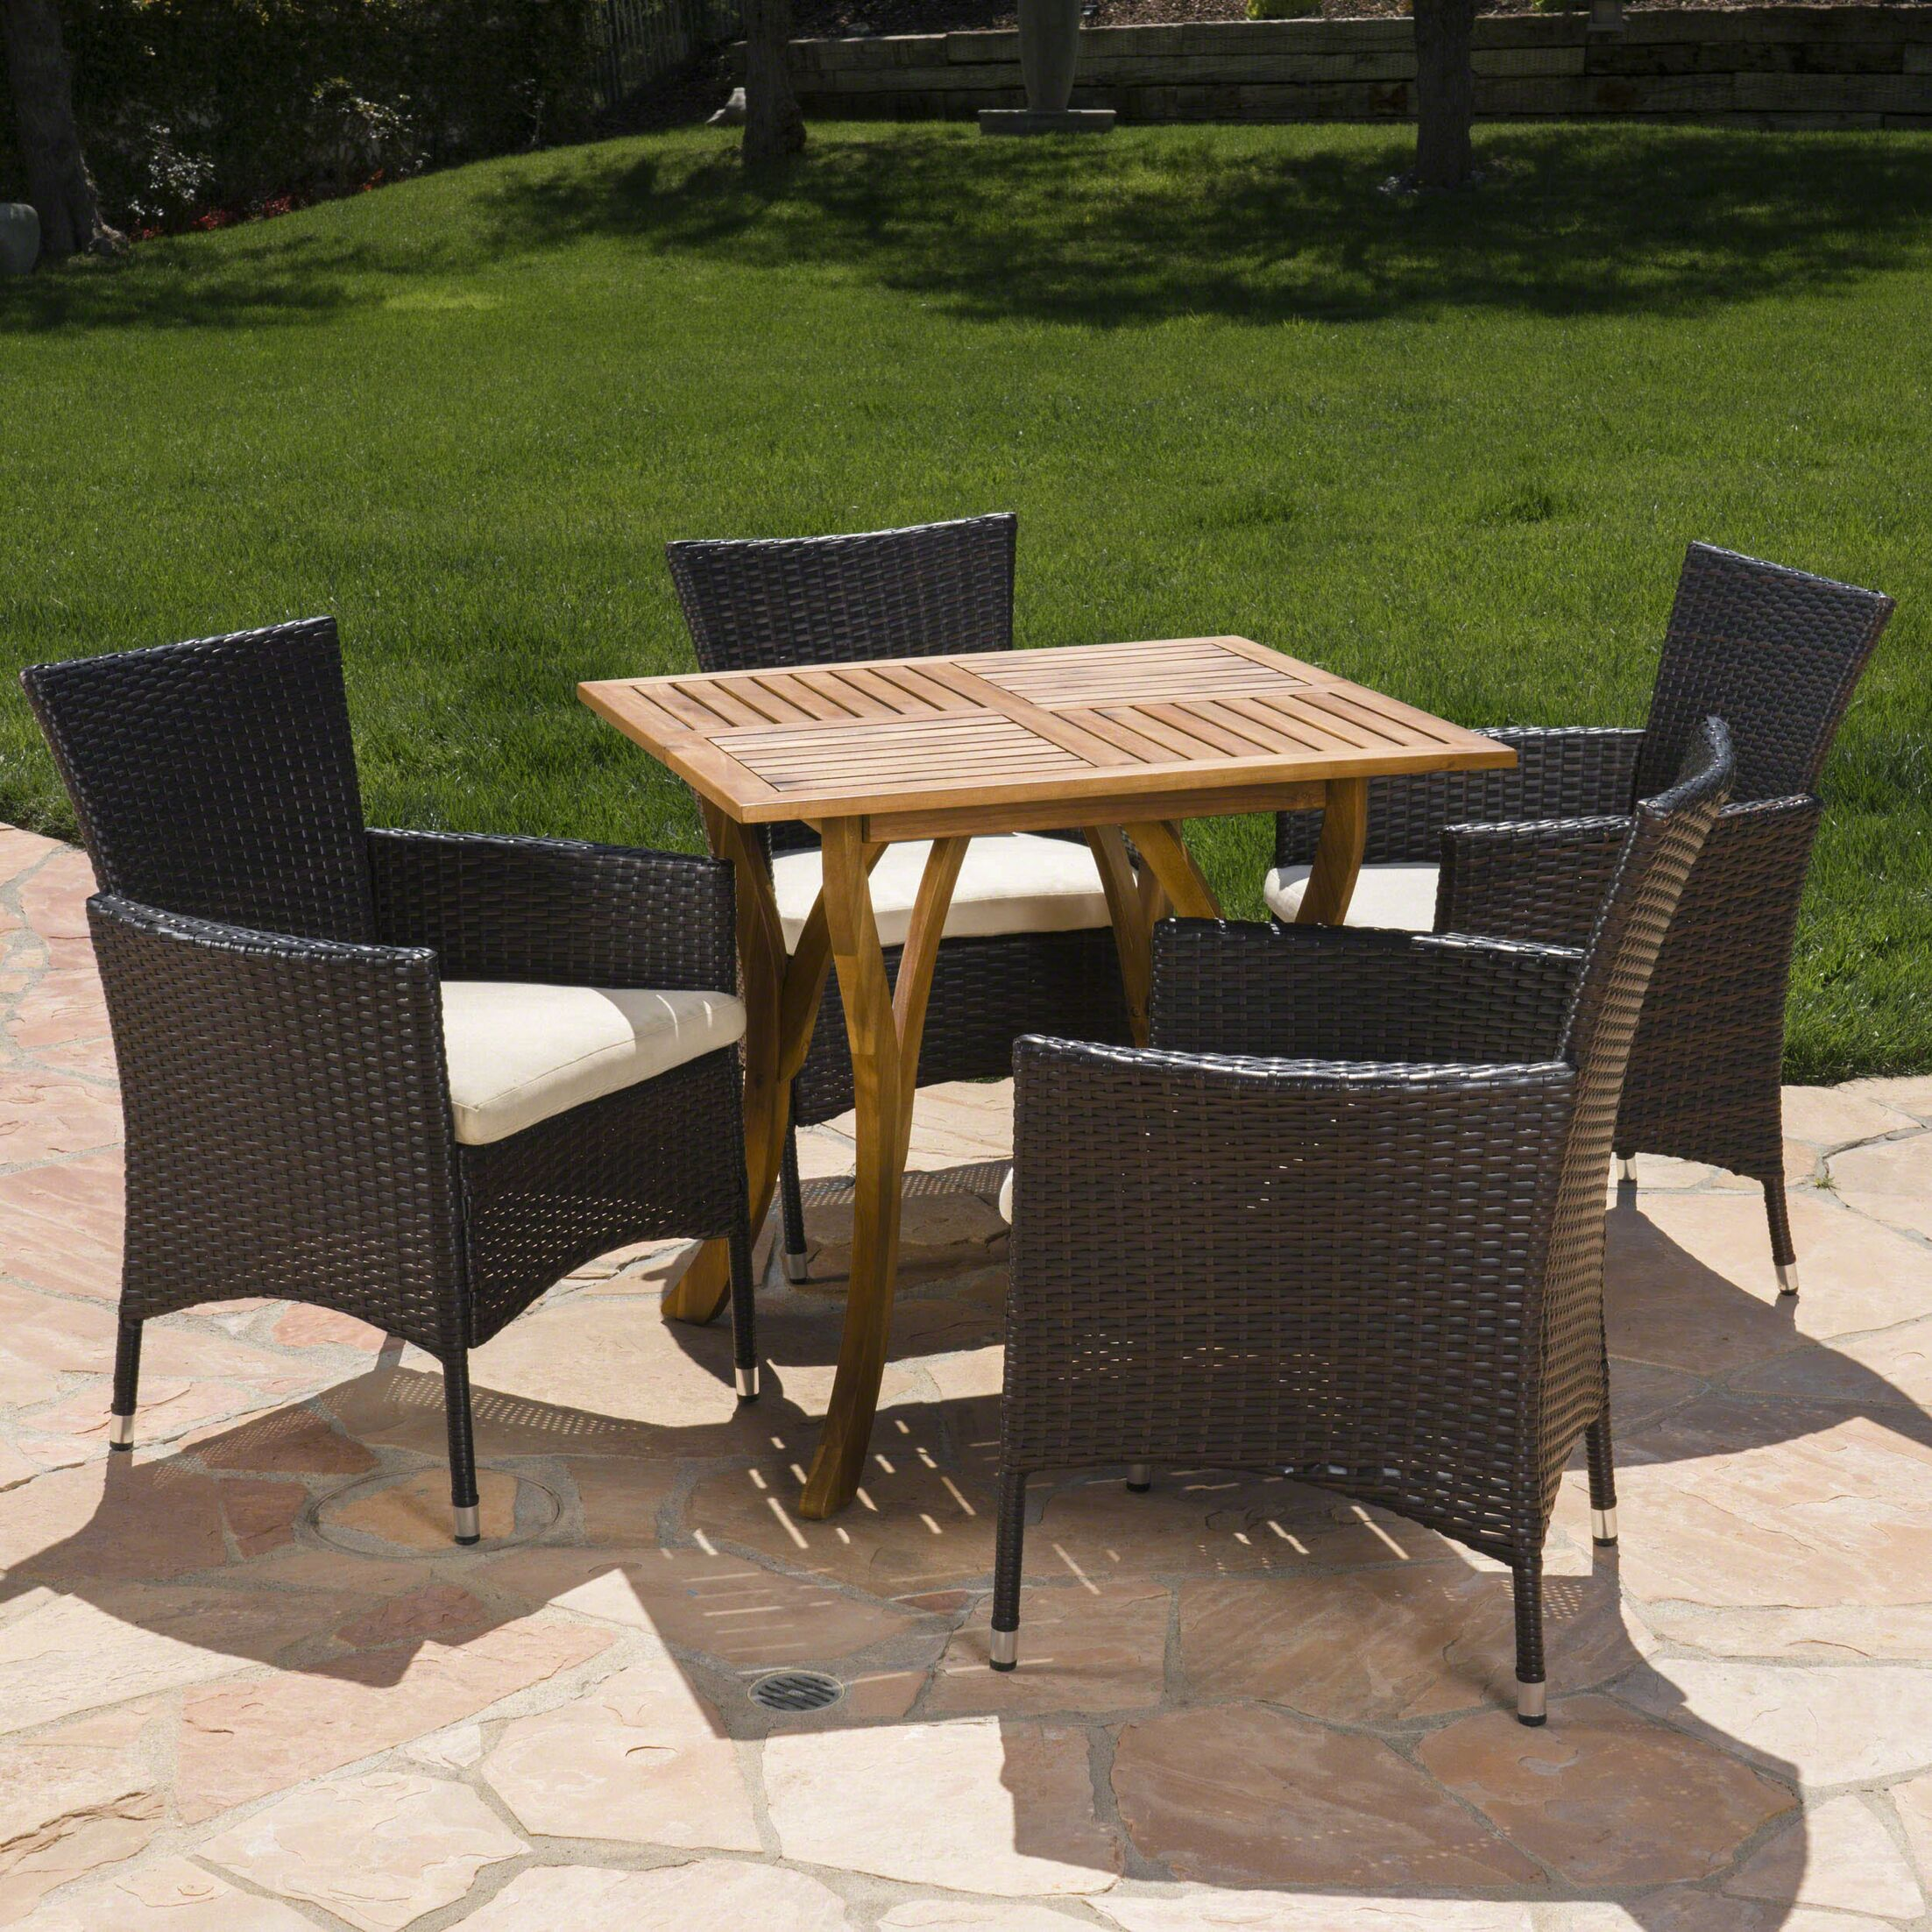 Meriam Outdoor Acacia Wood/Wicker 5 Piece Dining Set with Cushions